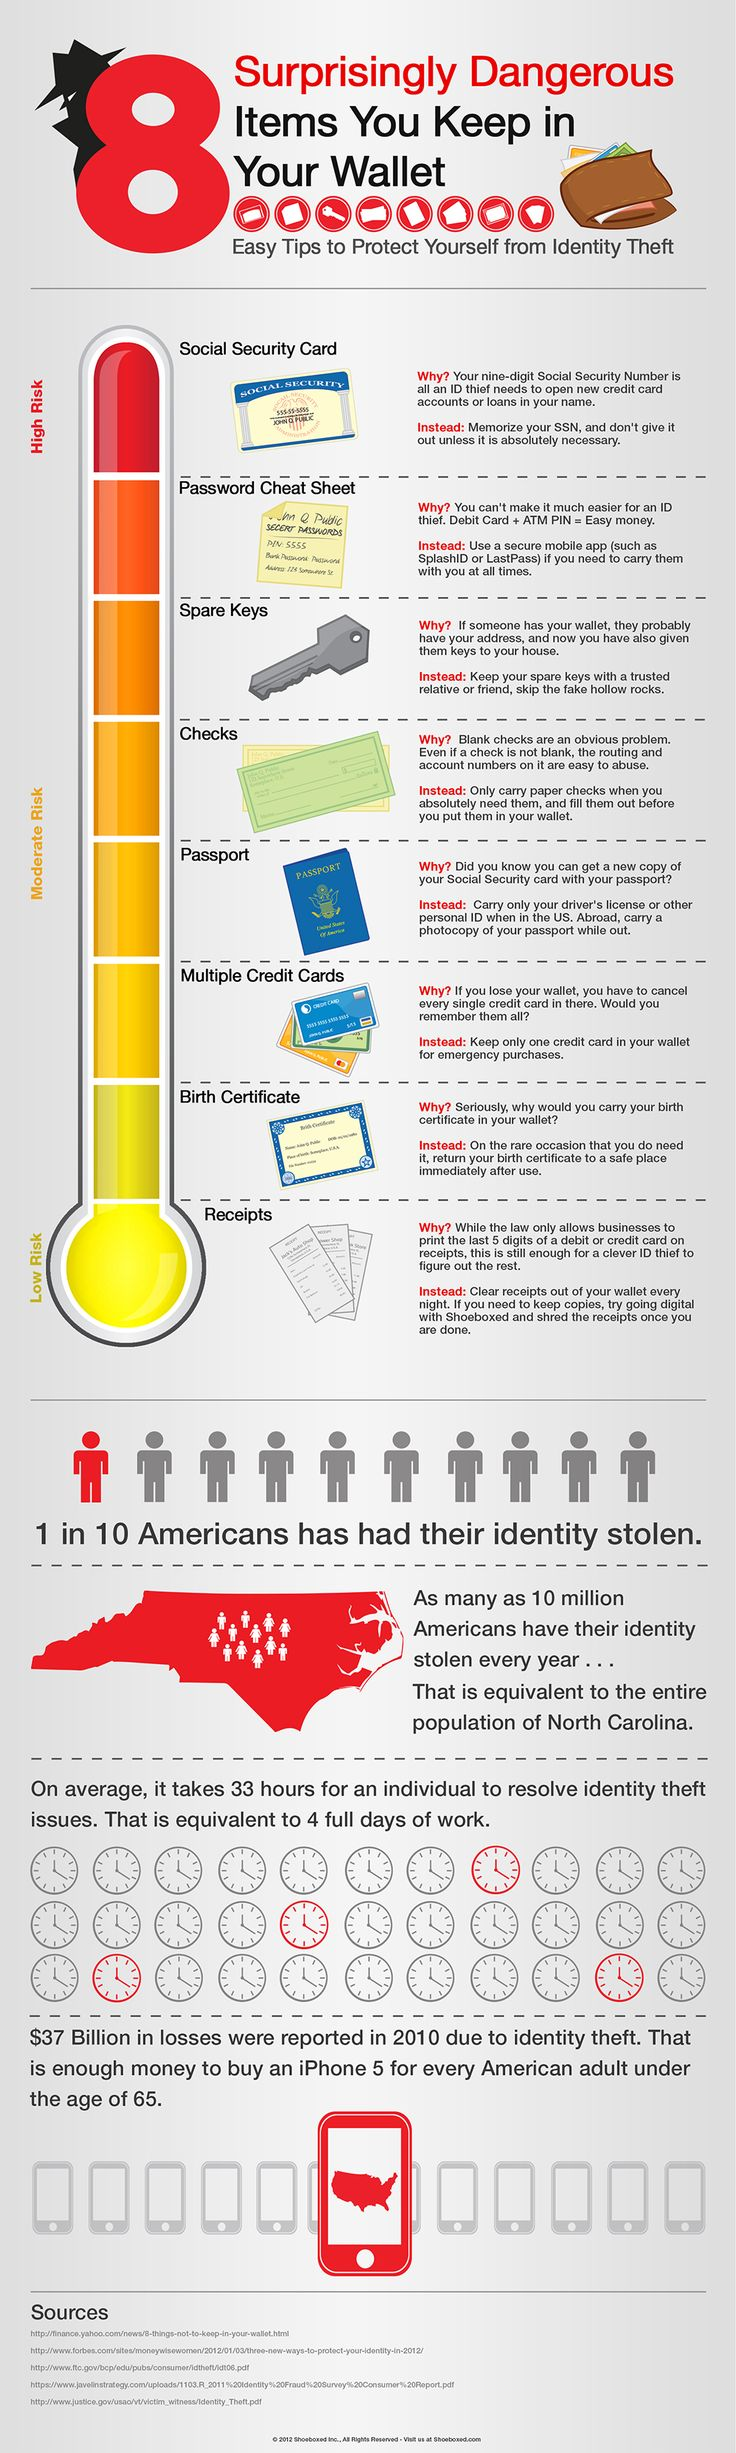 8 Surprisingly Dangerous Items that are Commonly Kept in Our Wallets. #IdentityTheft #IDTheft